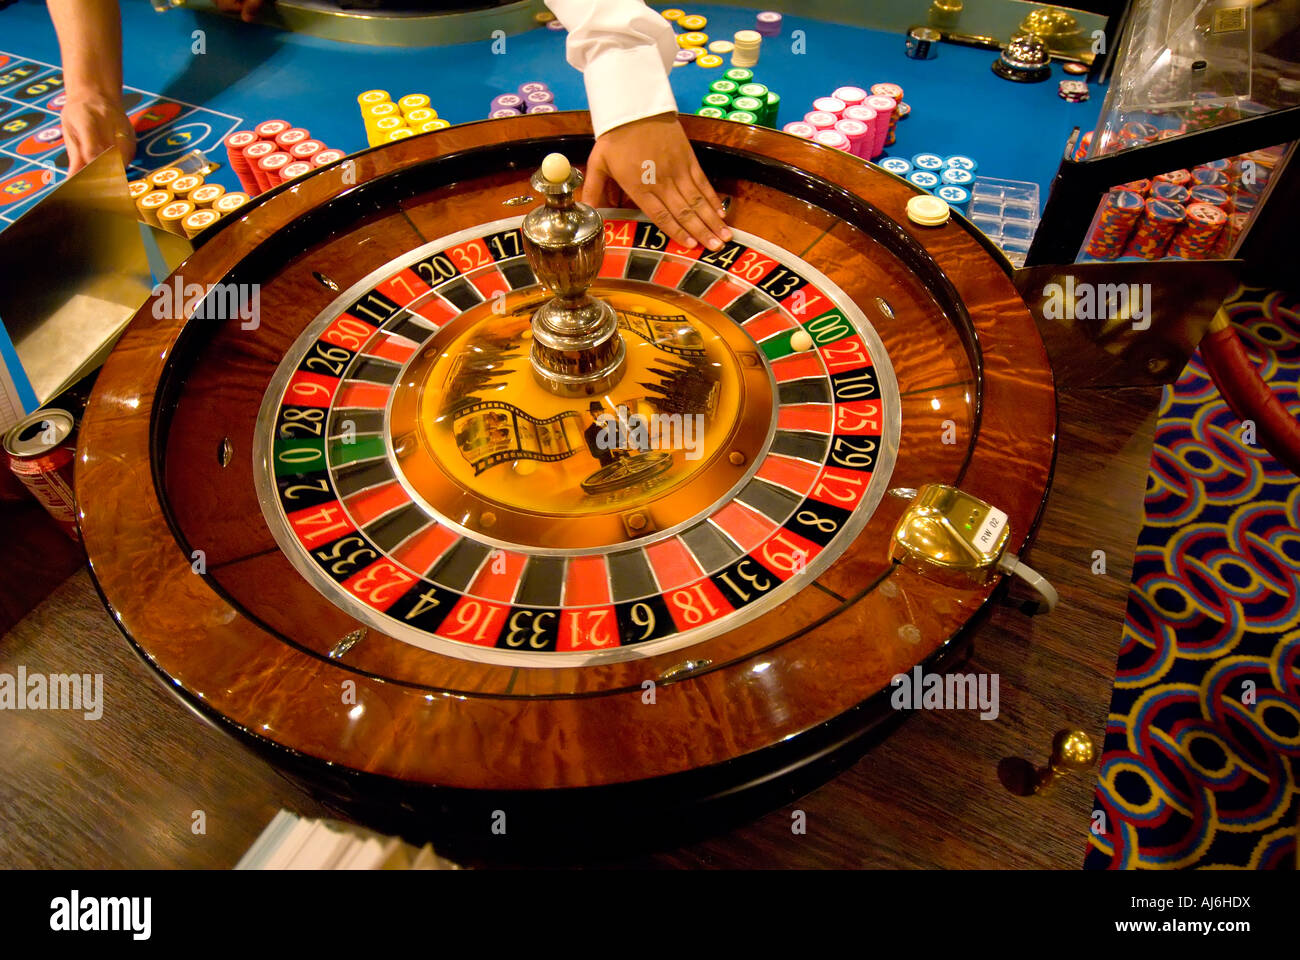 Play Premium American Roulette Online at Casino.com South Africa